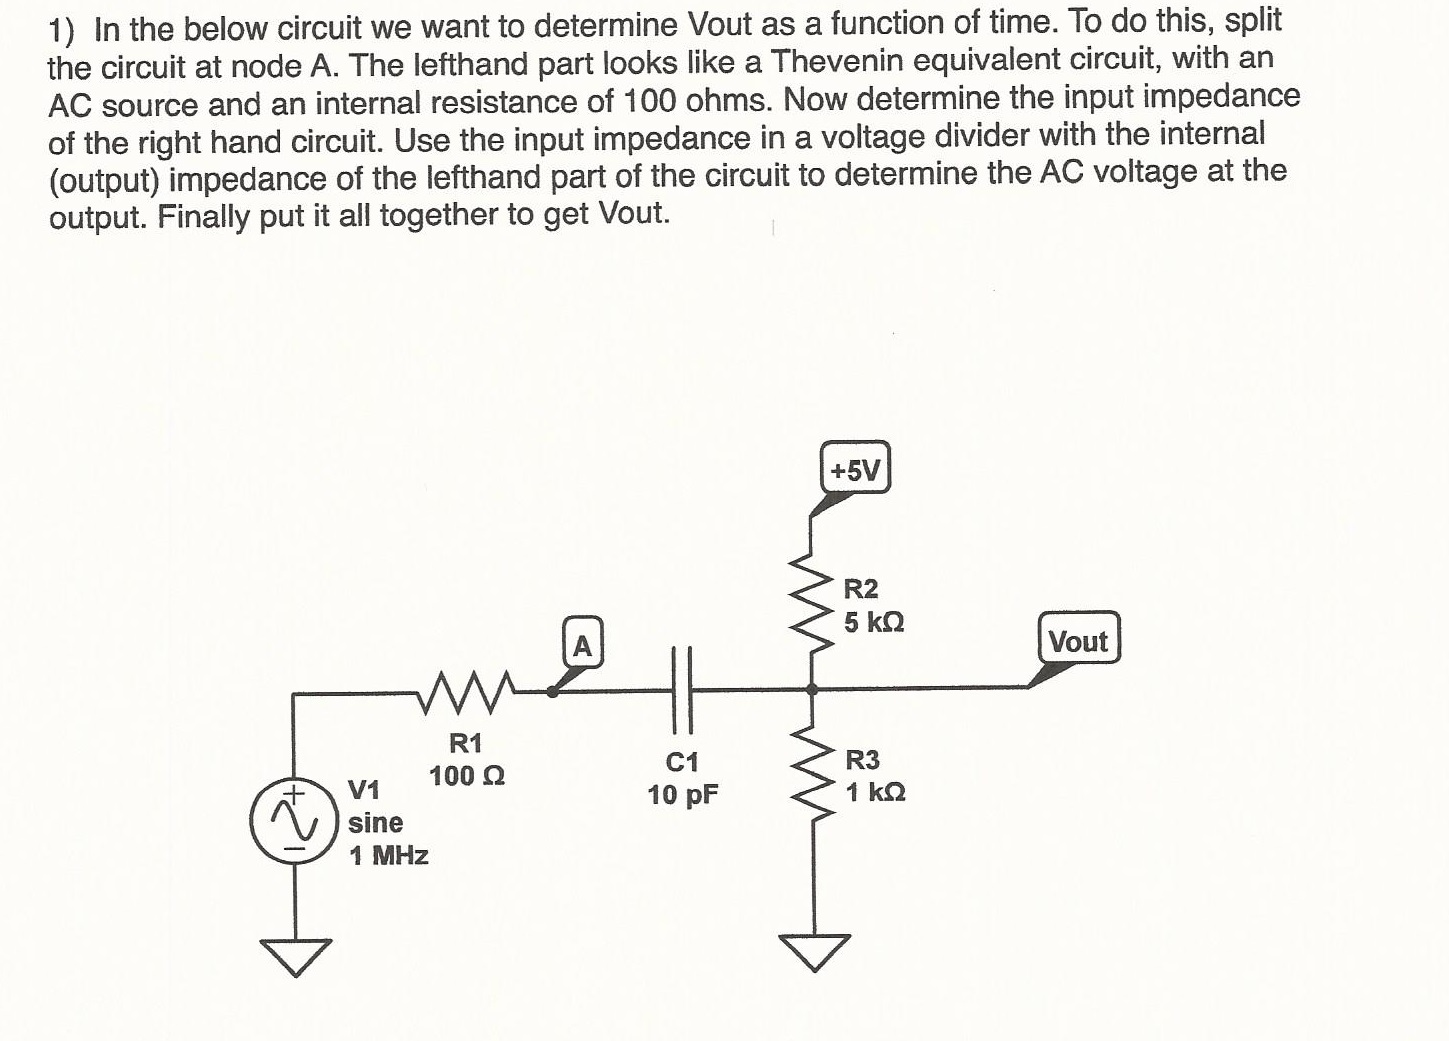 In the below circuit we want to determine Vout as